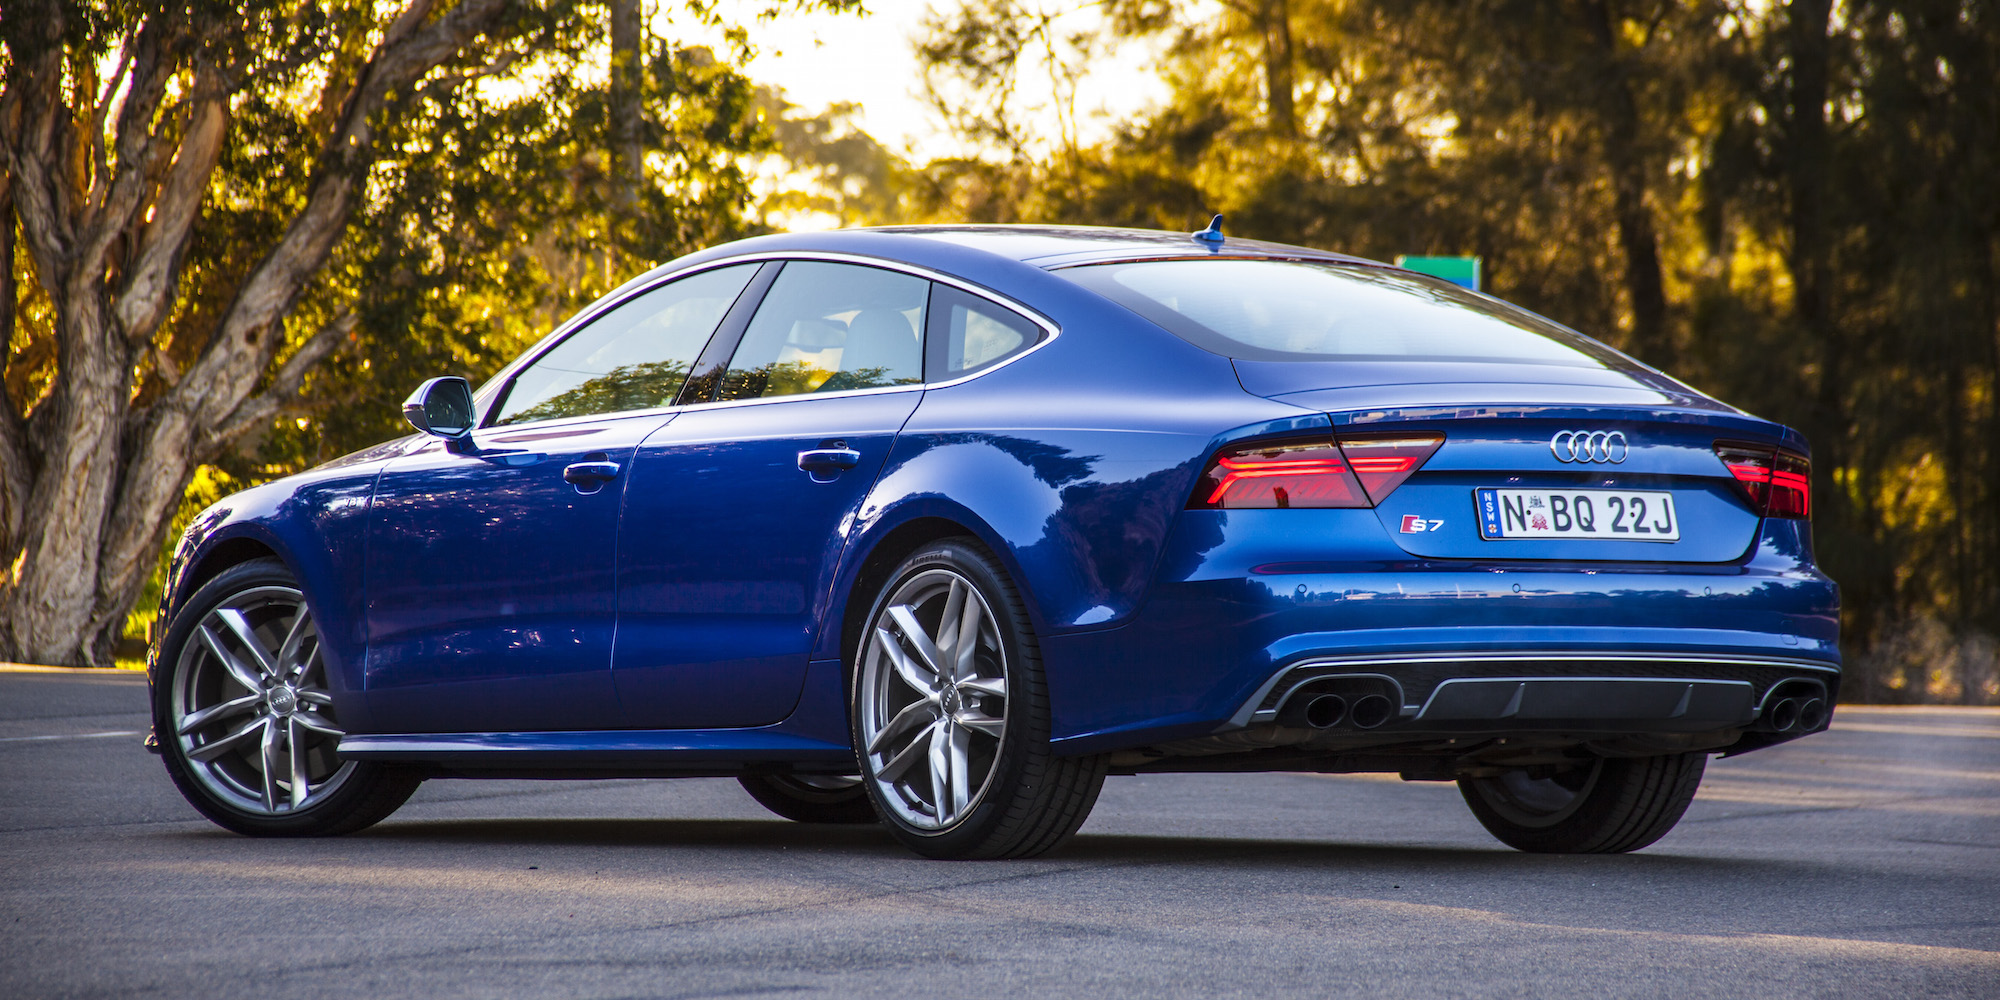 2016 Audi S7 Exterior (View 15 of 30)